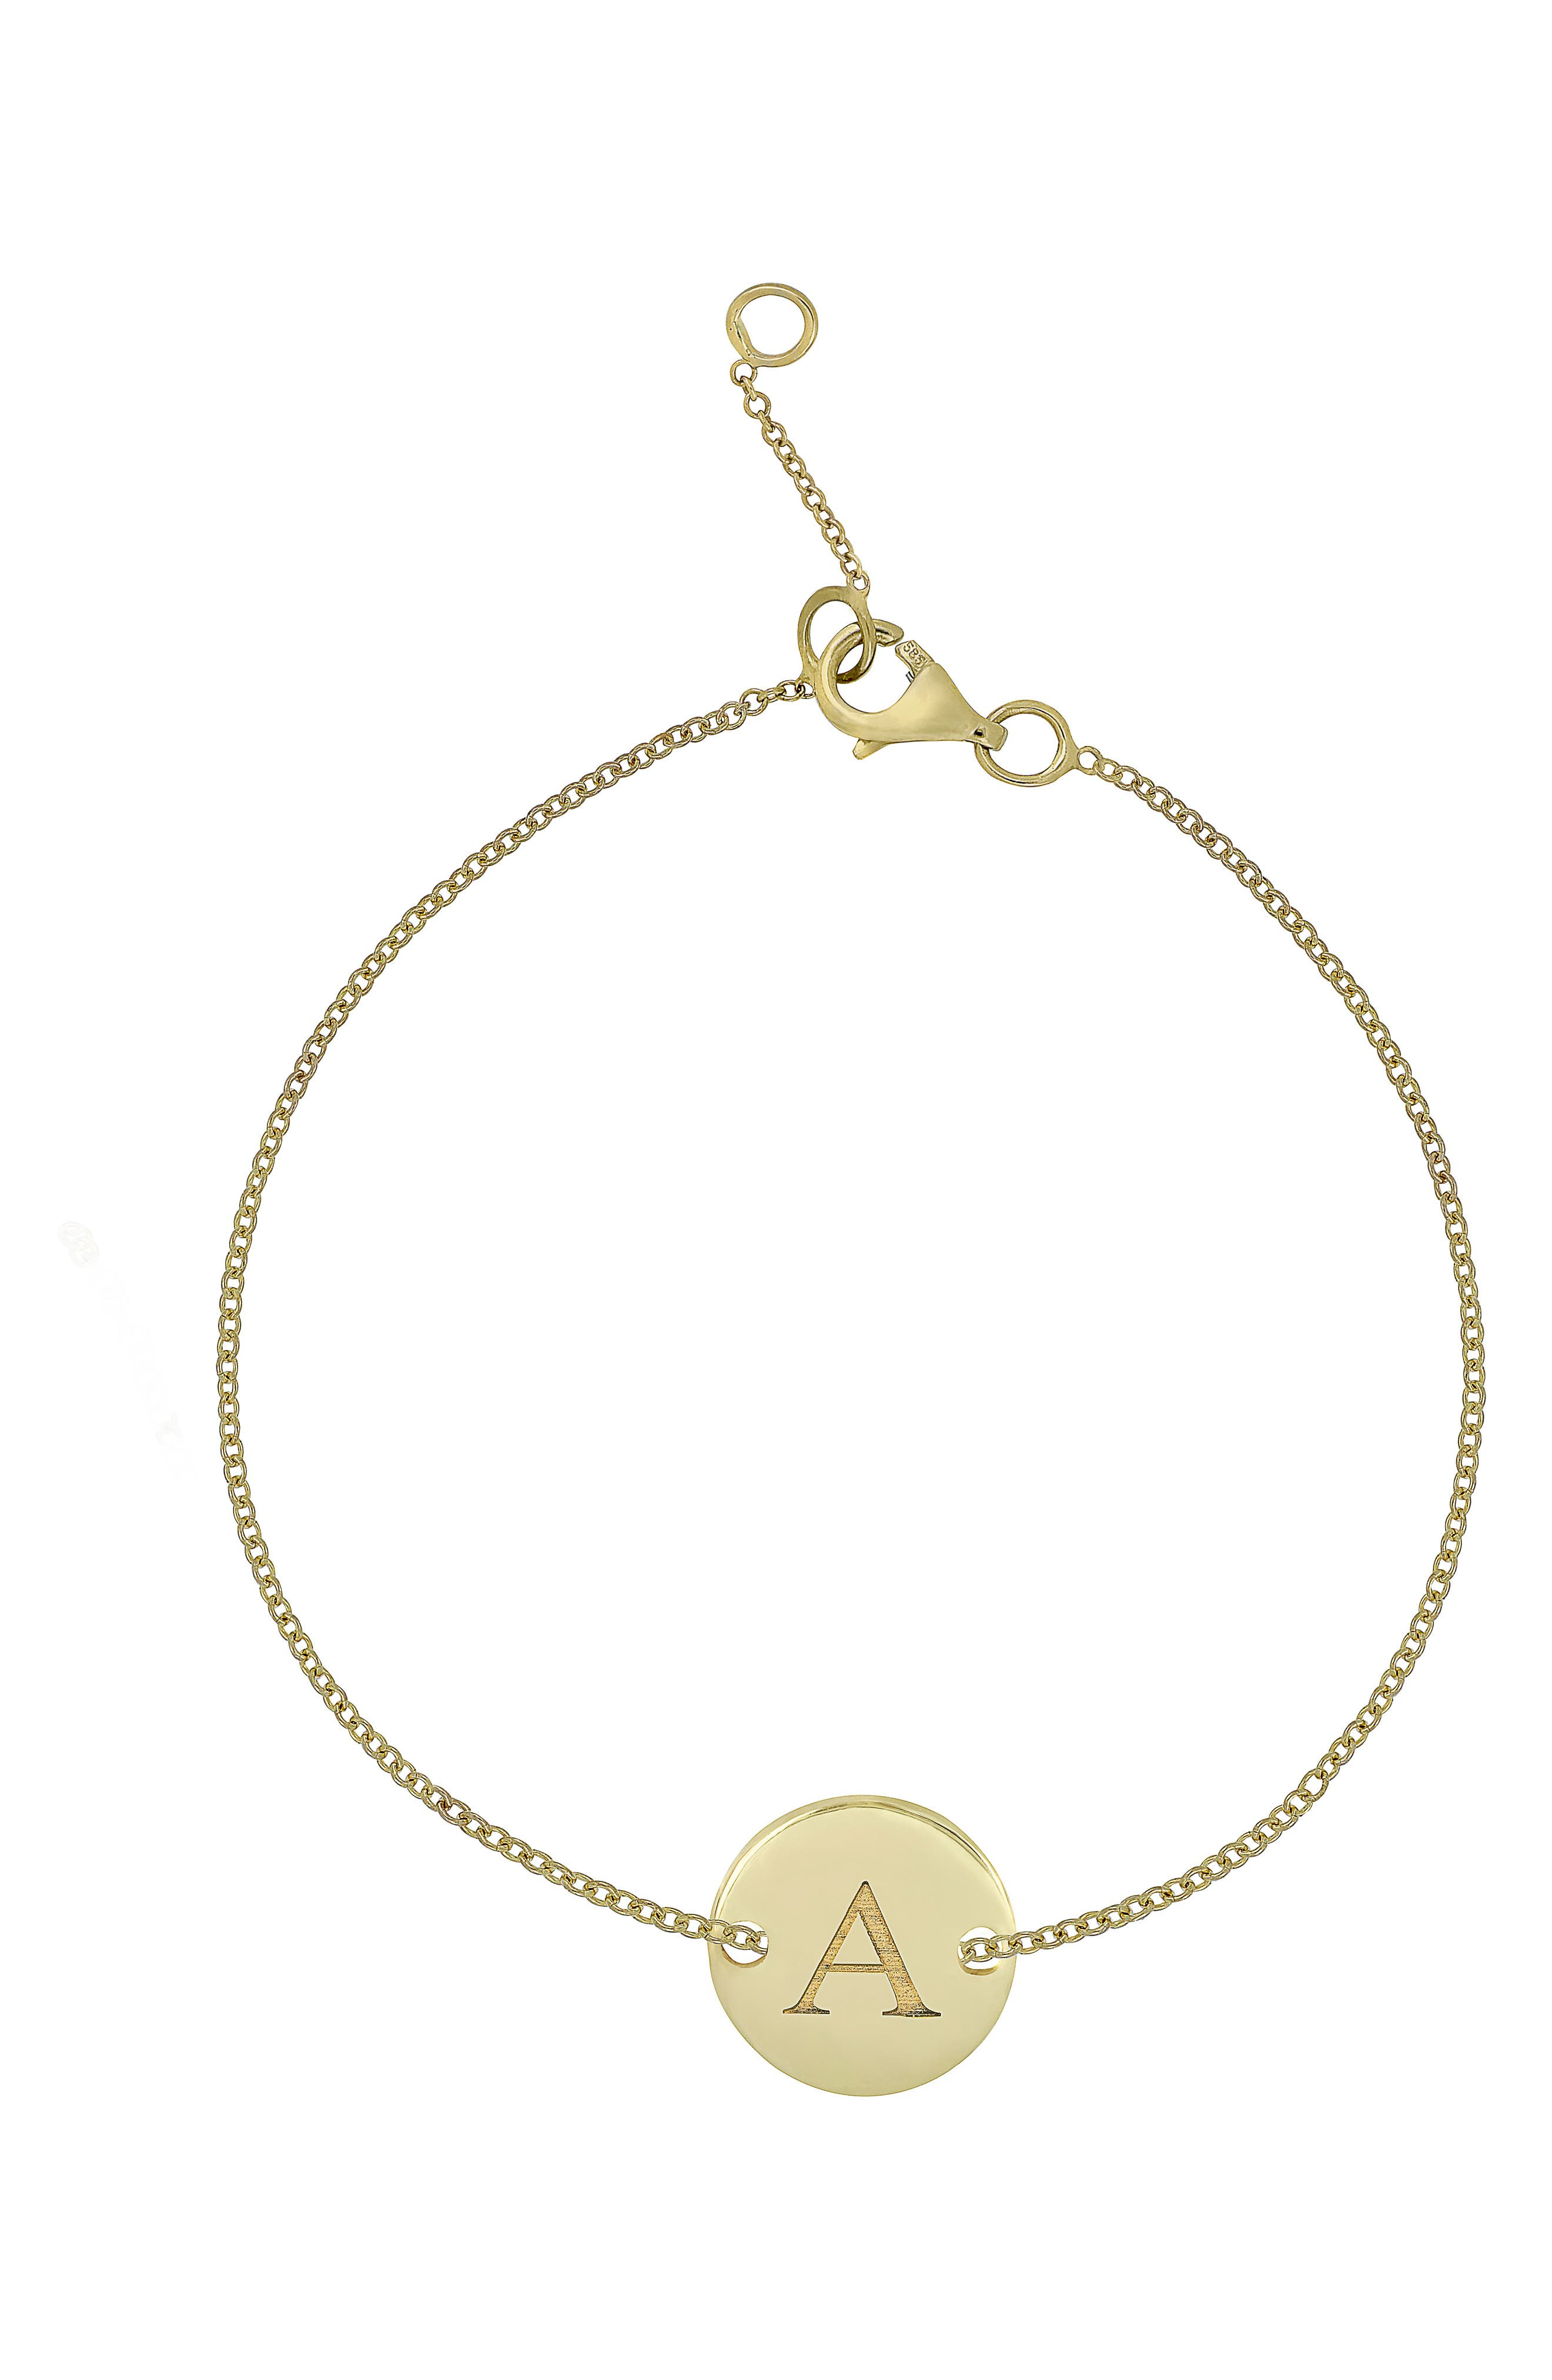 14k Gold Initial Bracelet,                             Main thumbnail 1, color,                             Yellow Gold- A